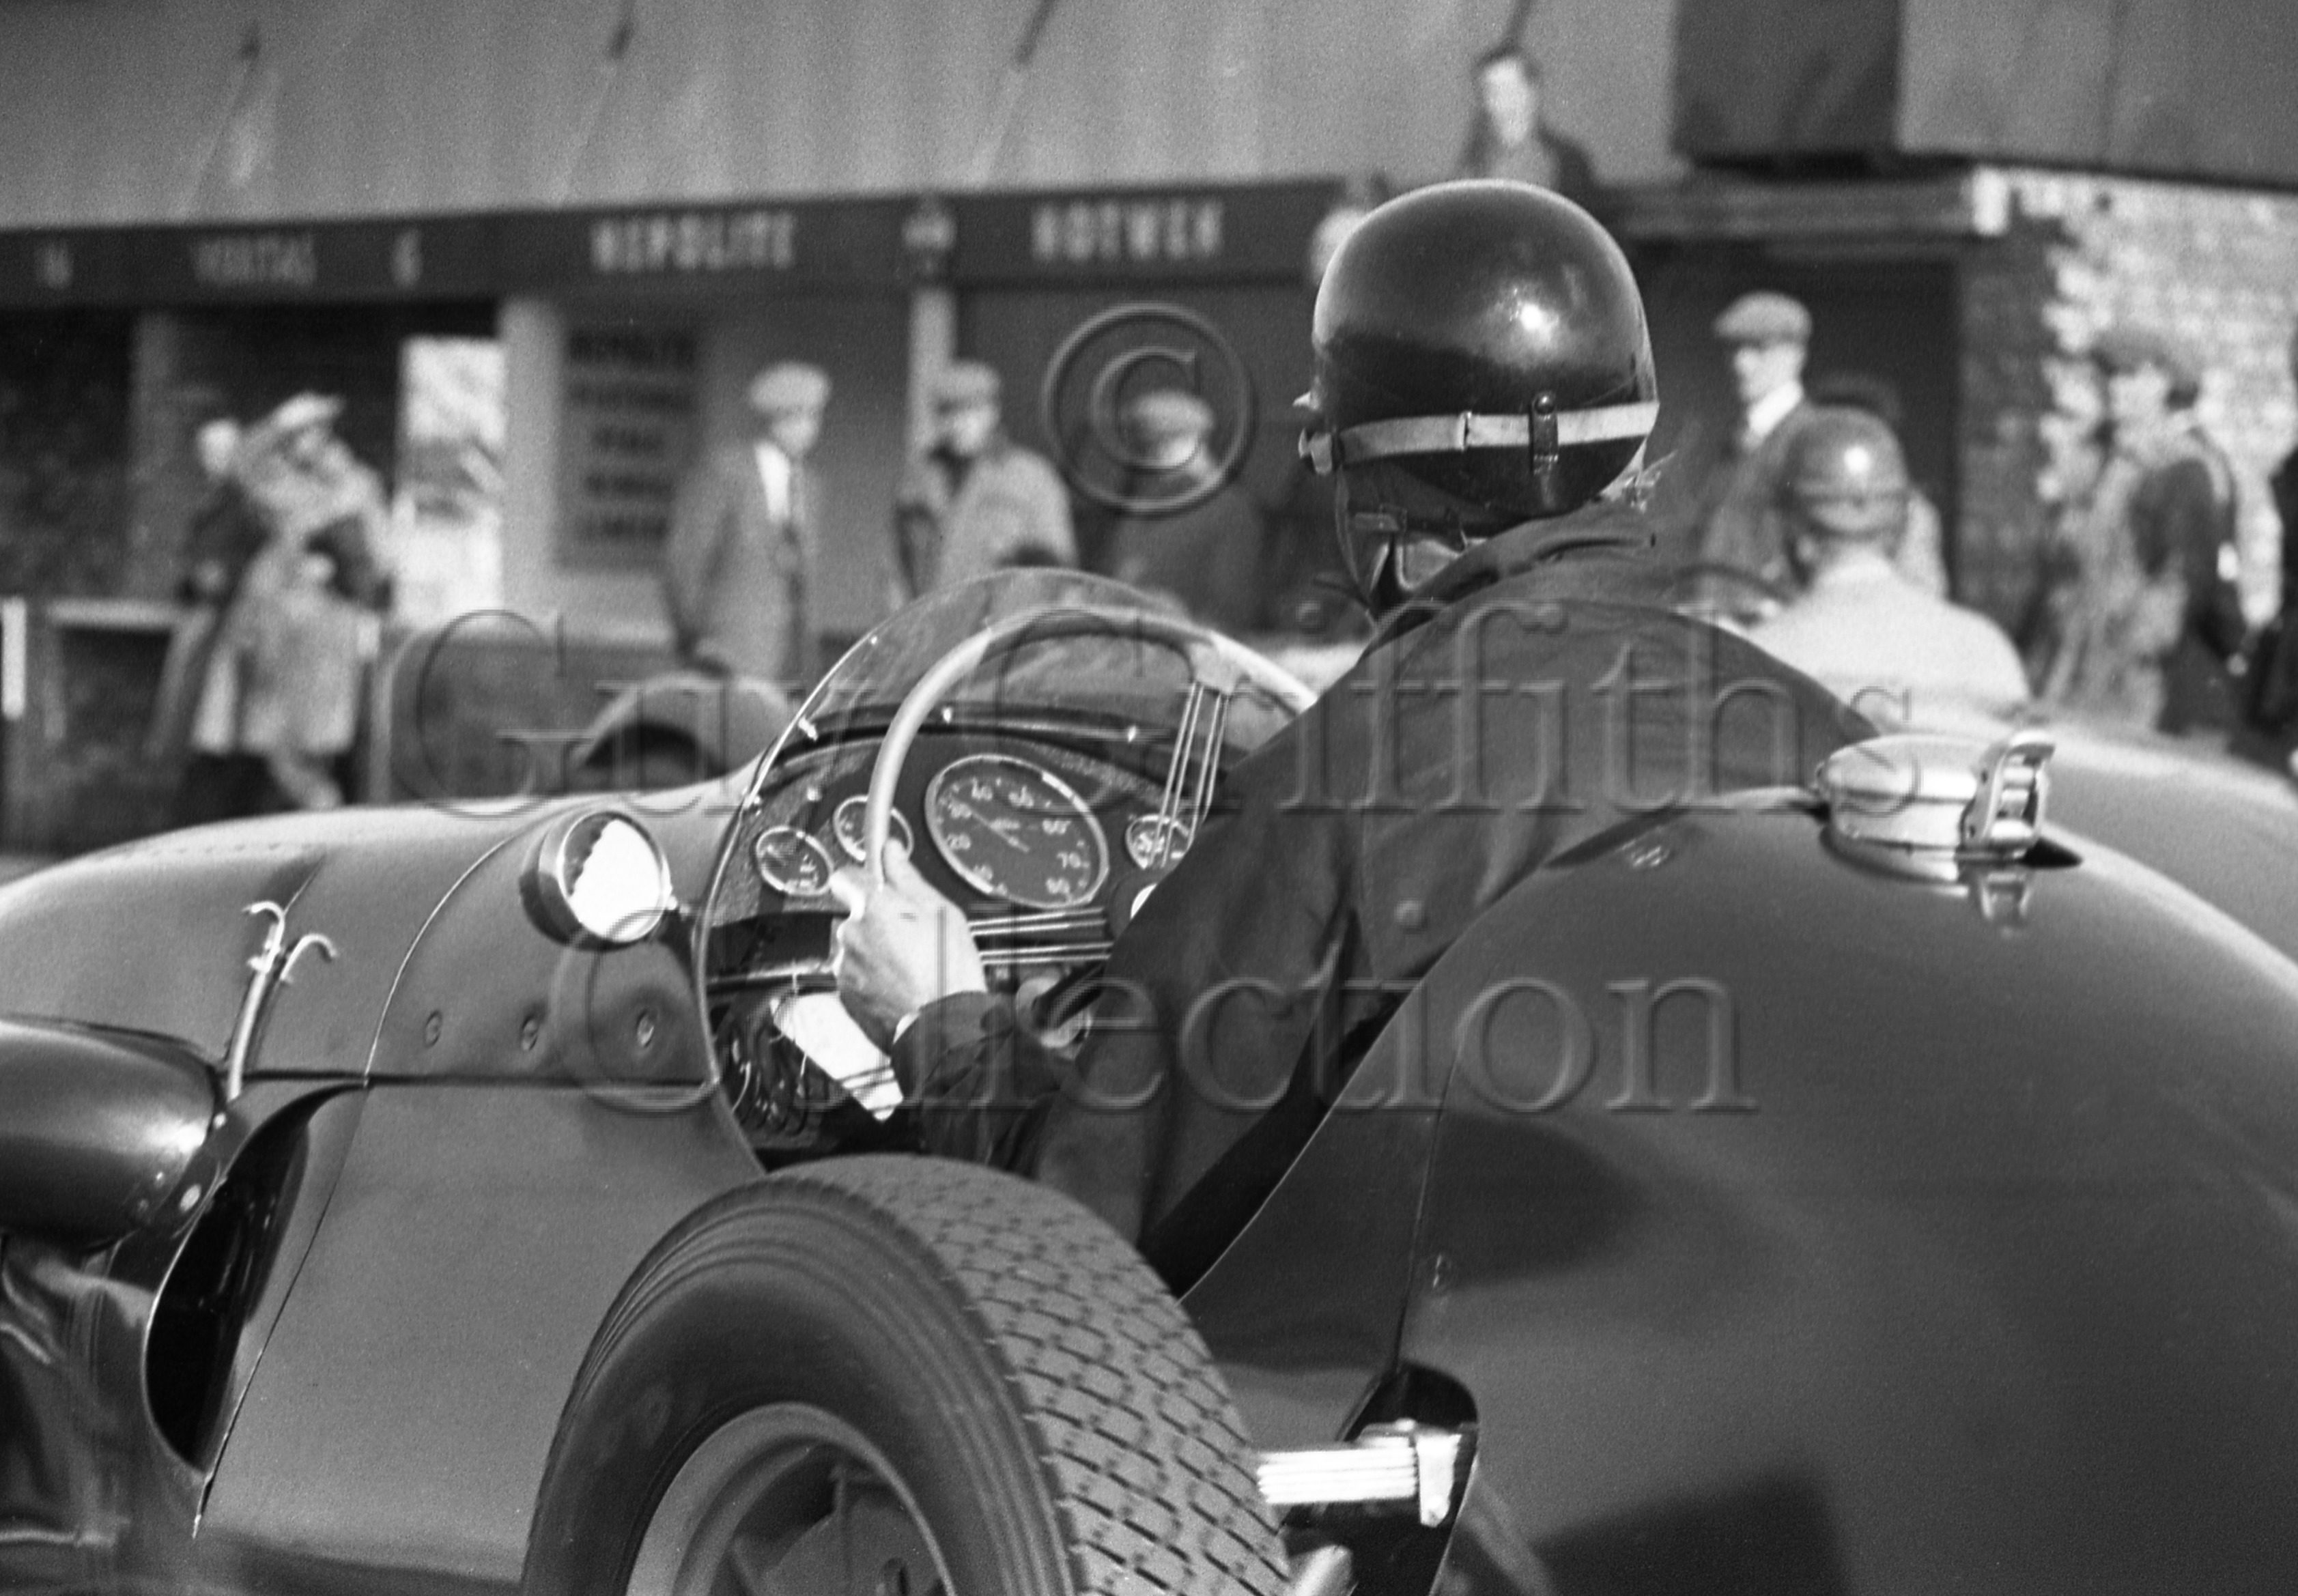 69-592–T-Crook–Cooper-Alta–Silverstone–16-05-1953.jpg - The Guy Griffiths Collection